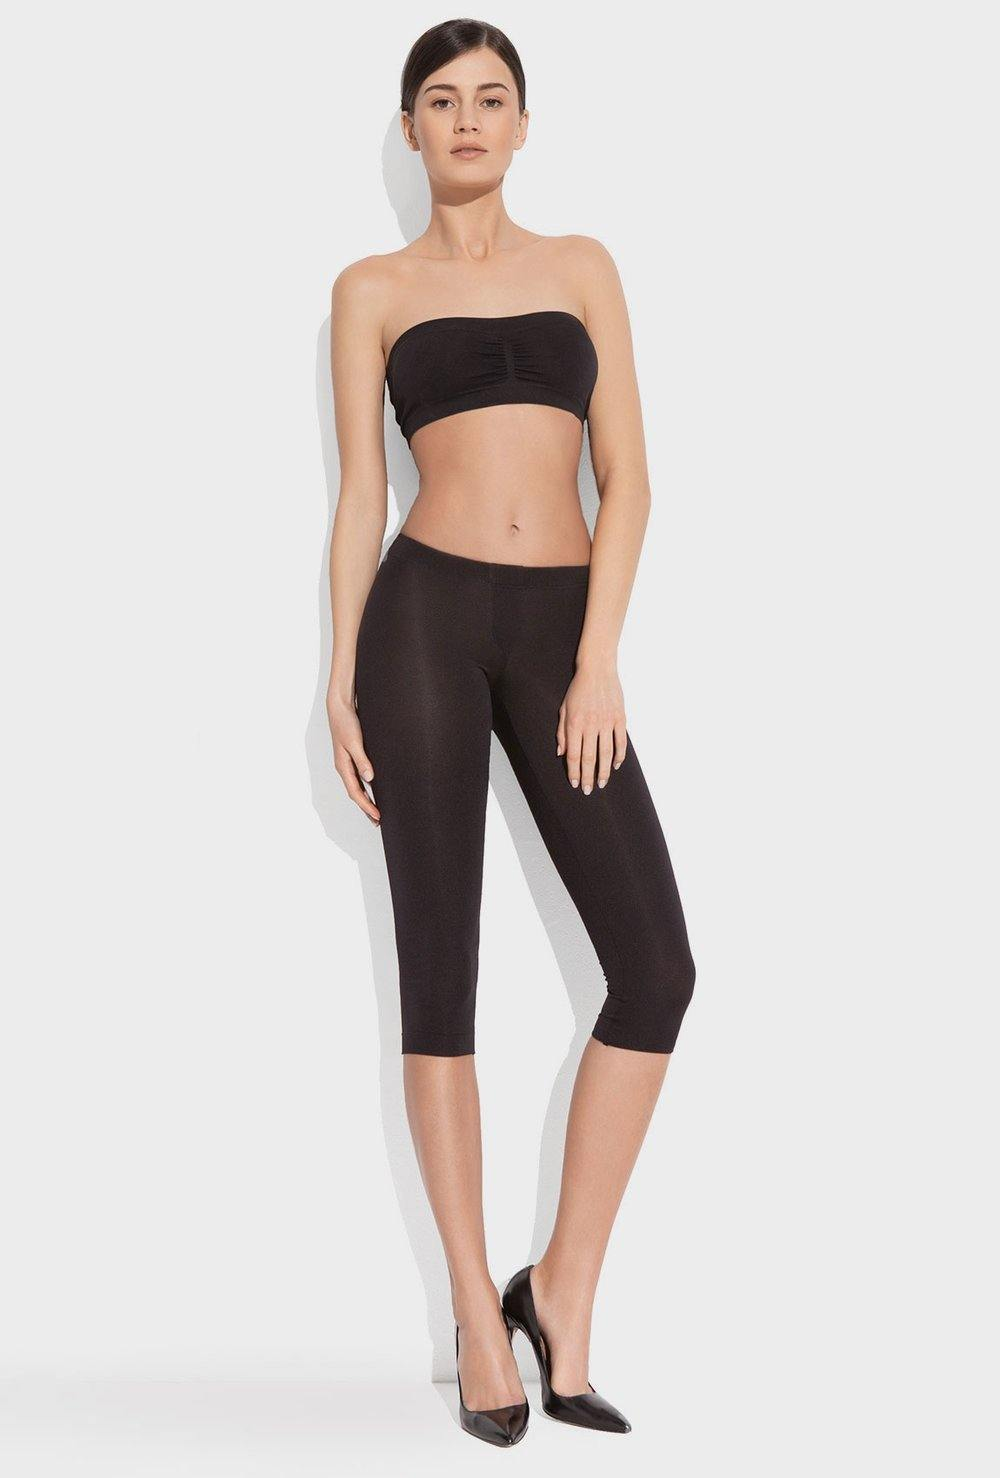 Gatta Capri Spring Leggings - GATTA FASHION